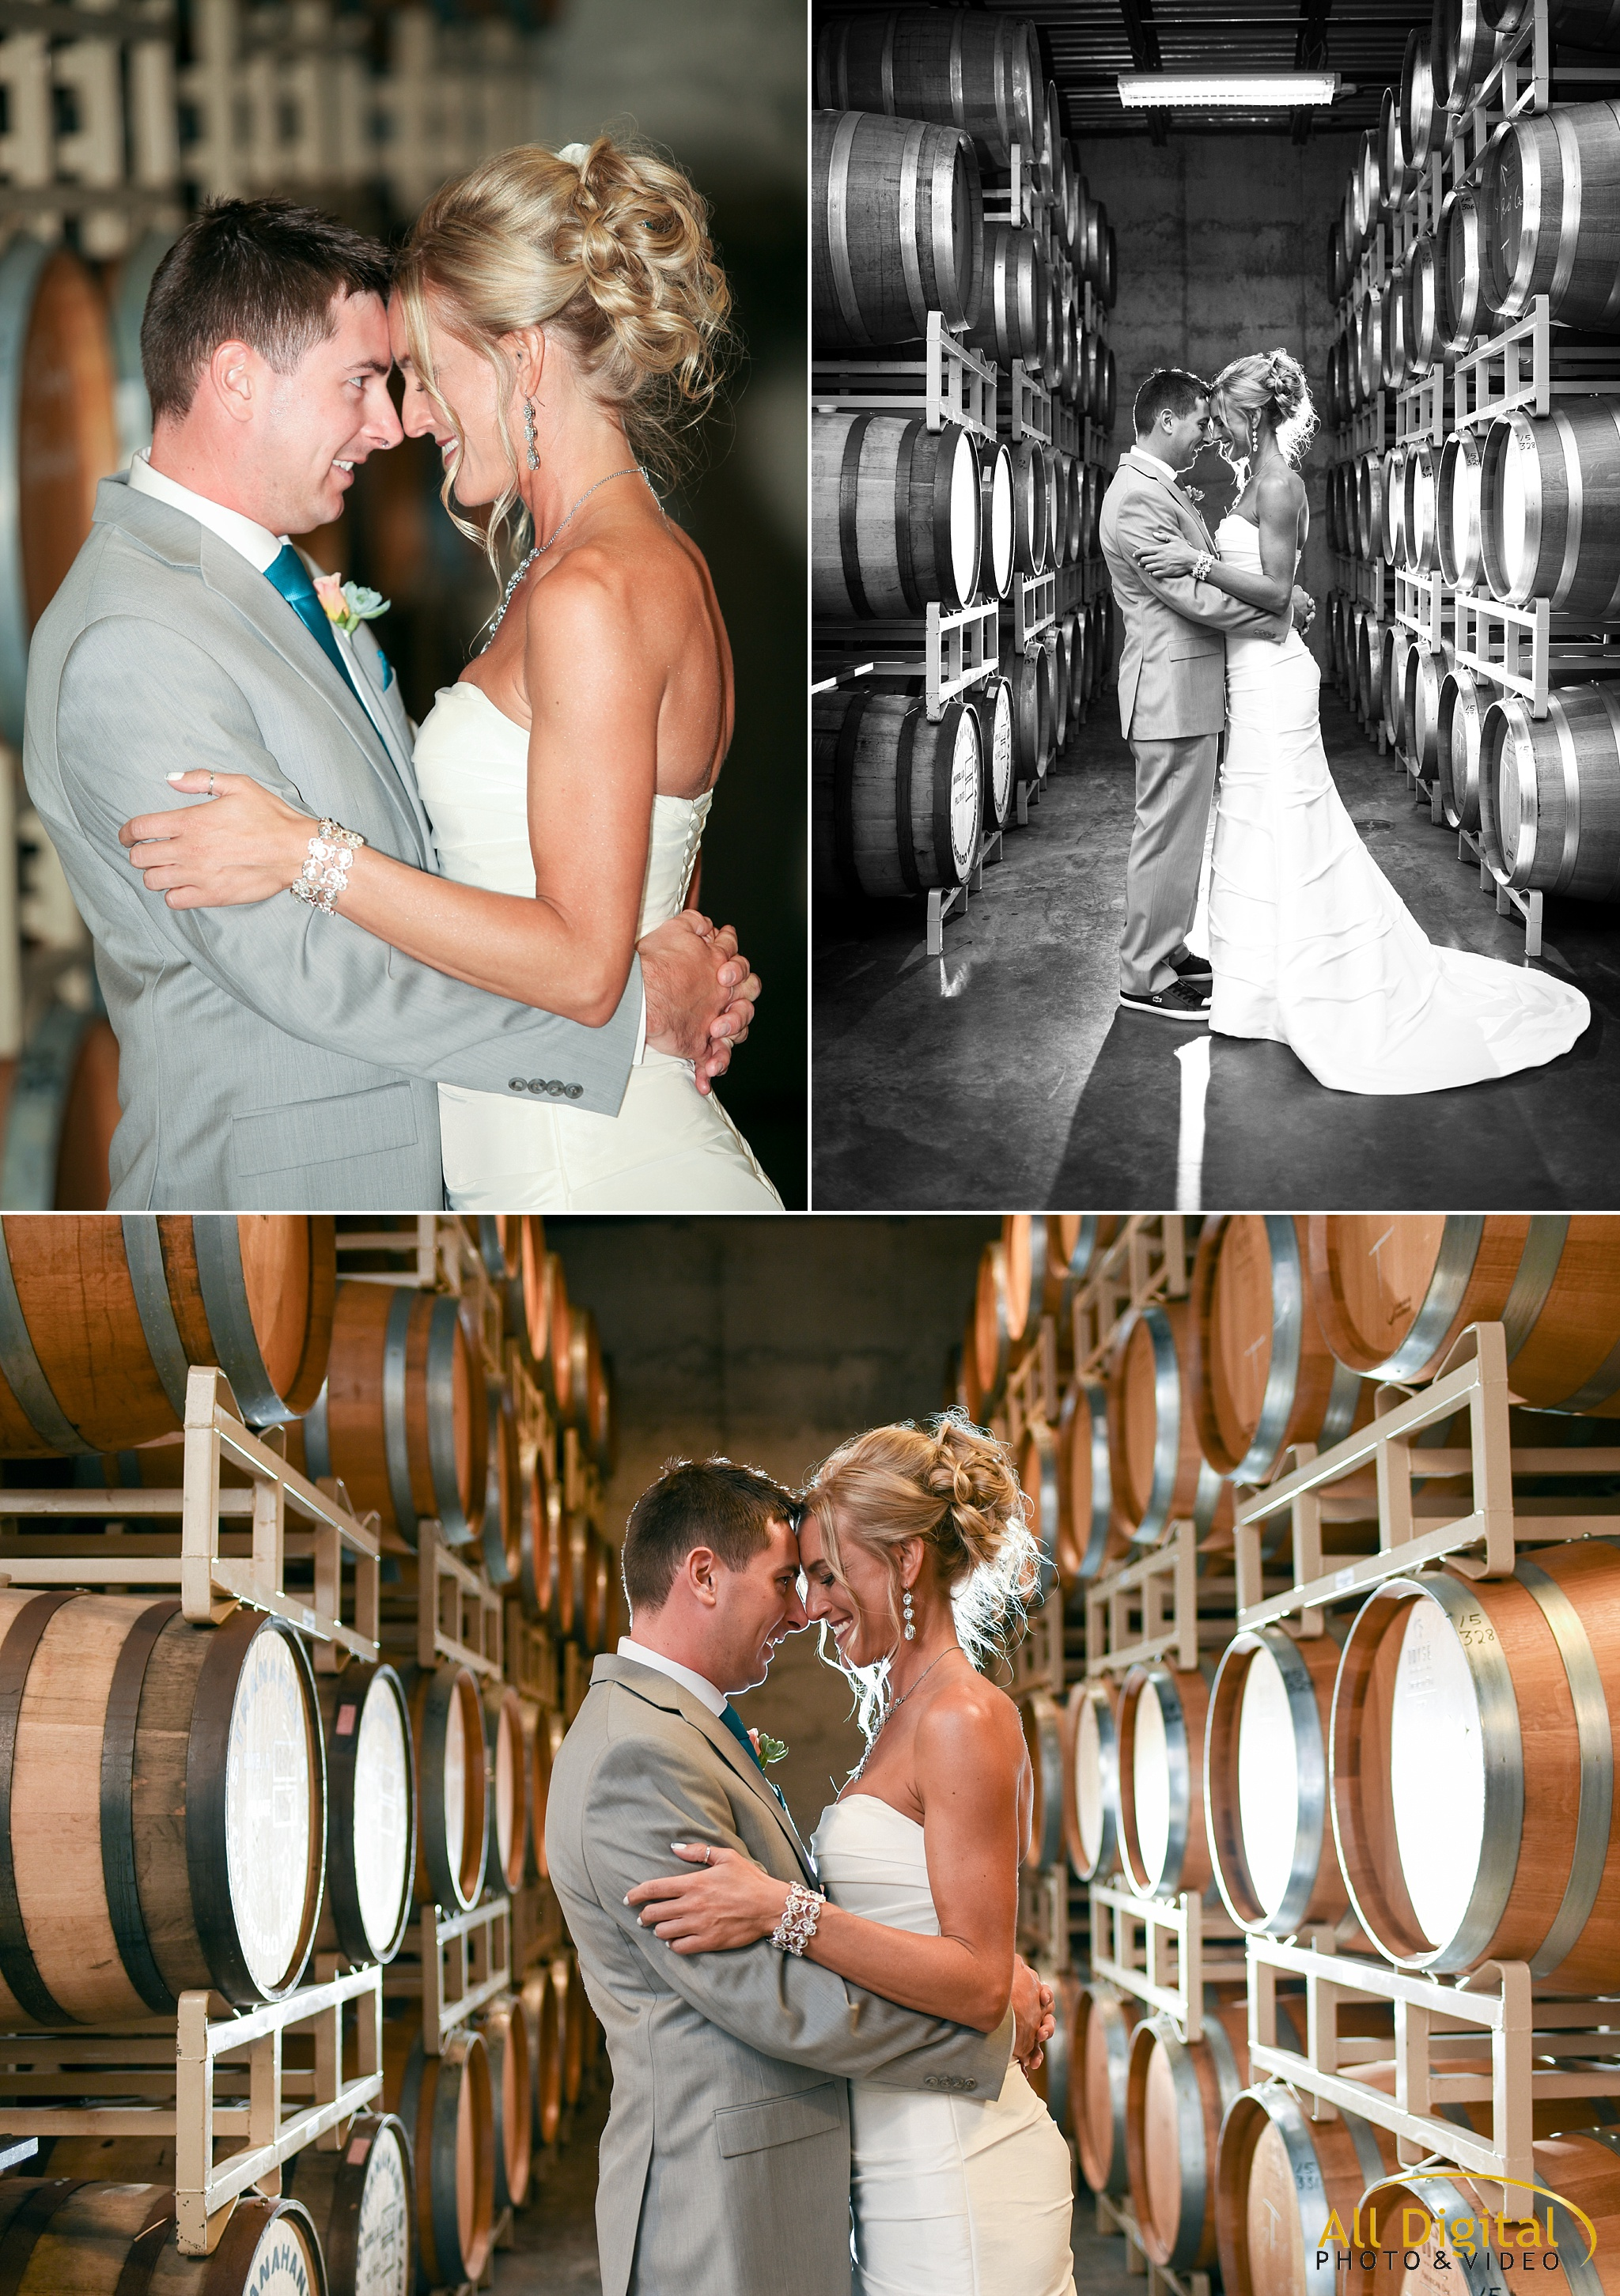 Bride & Groom romantic portraits at Balisteri Vineyards.